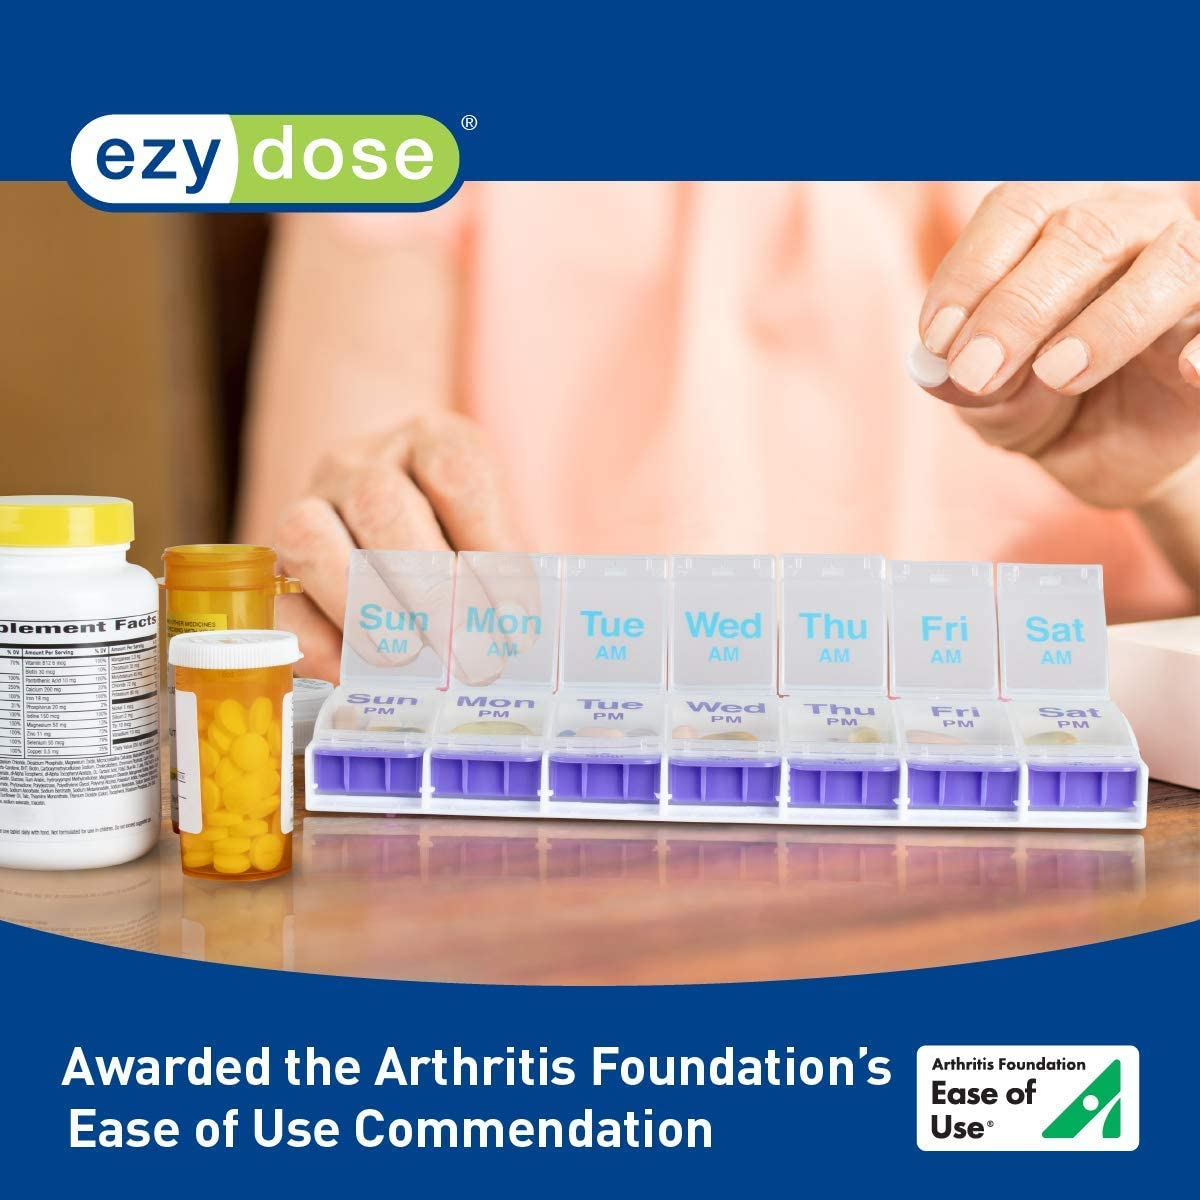 Ezy Dose Push Button (7-Day) Pill, Medicine, Vitamin Organizer Box | Weekly, 2 Times a Day, AM PM | Large Compartments | Arthritis Friendly | Clear Lids: Health & Personal Care